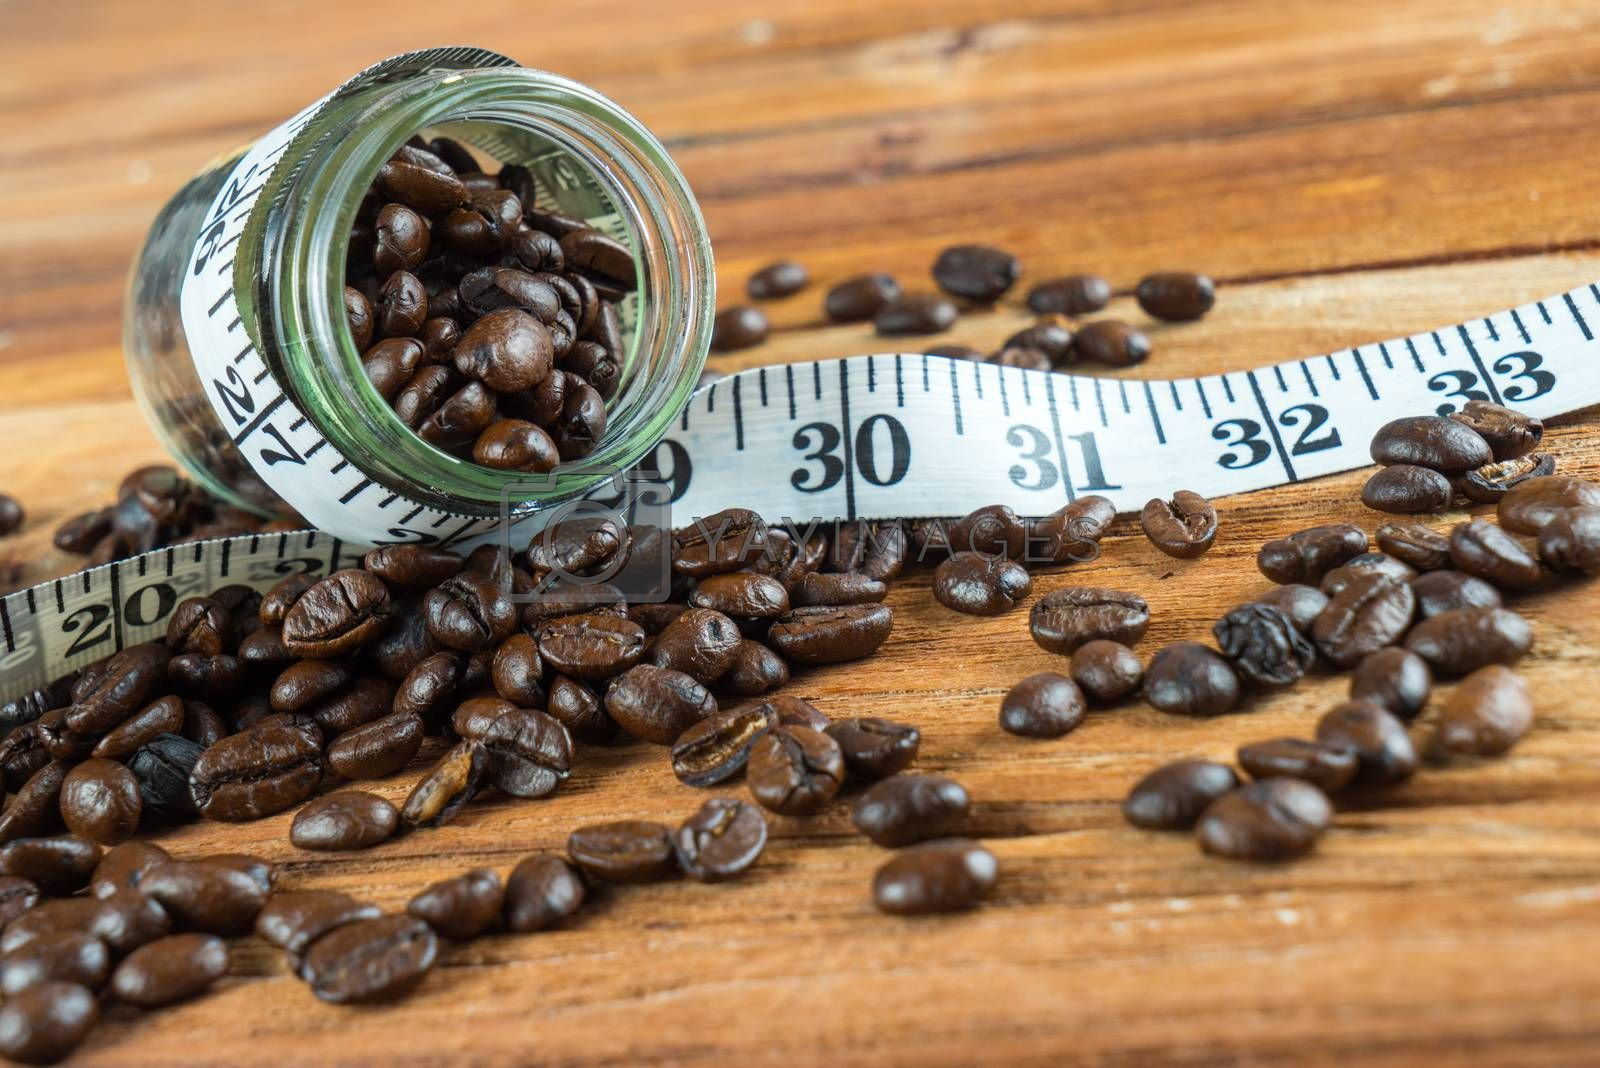 Royalty free image of Coffee bean in glass bottle with tape measure on wooden backgrou by iamway